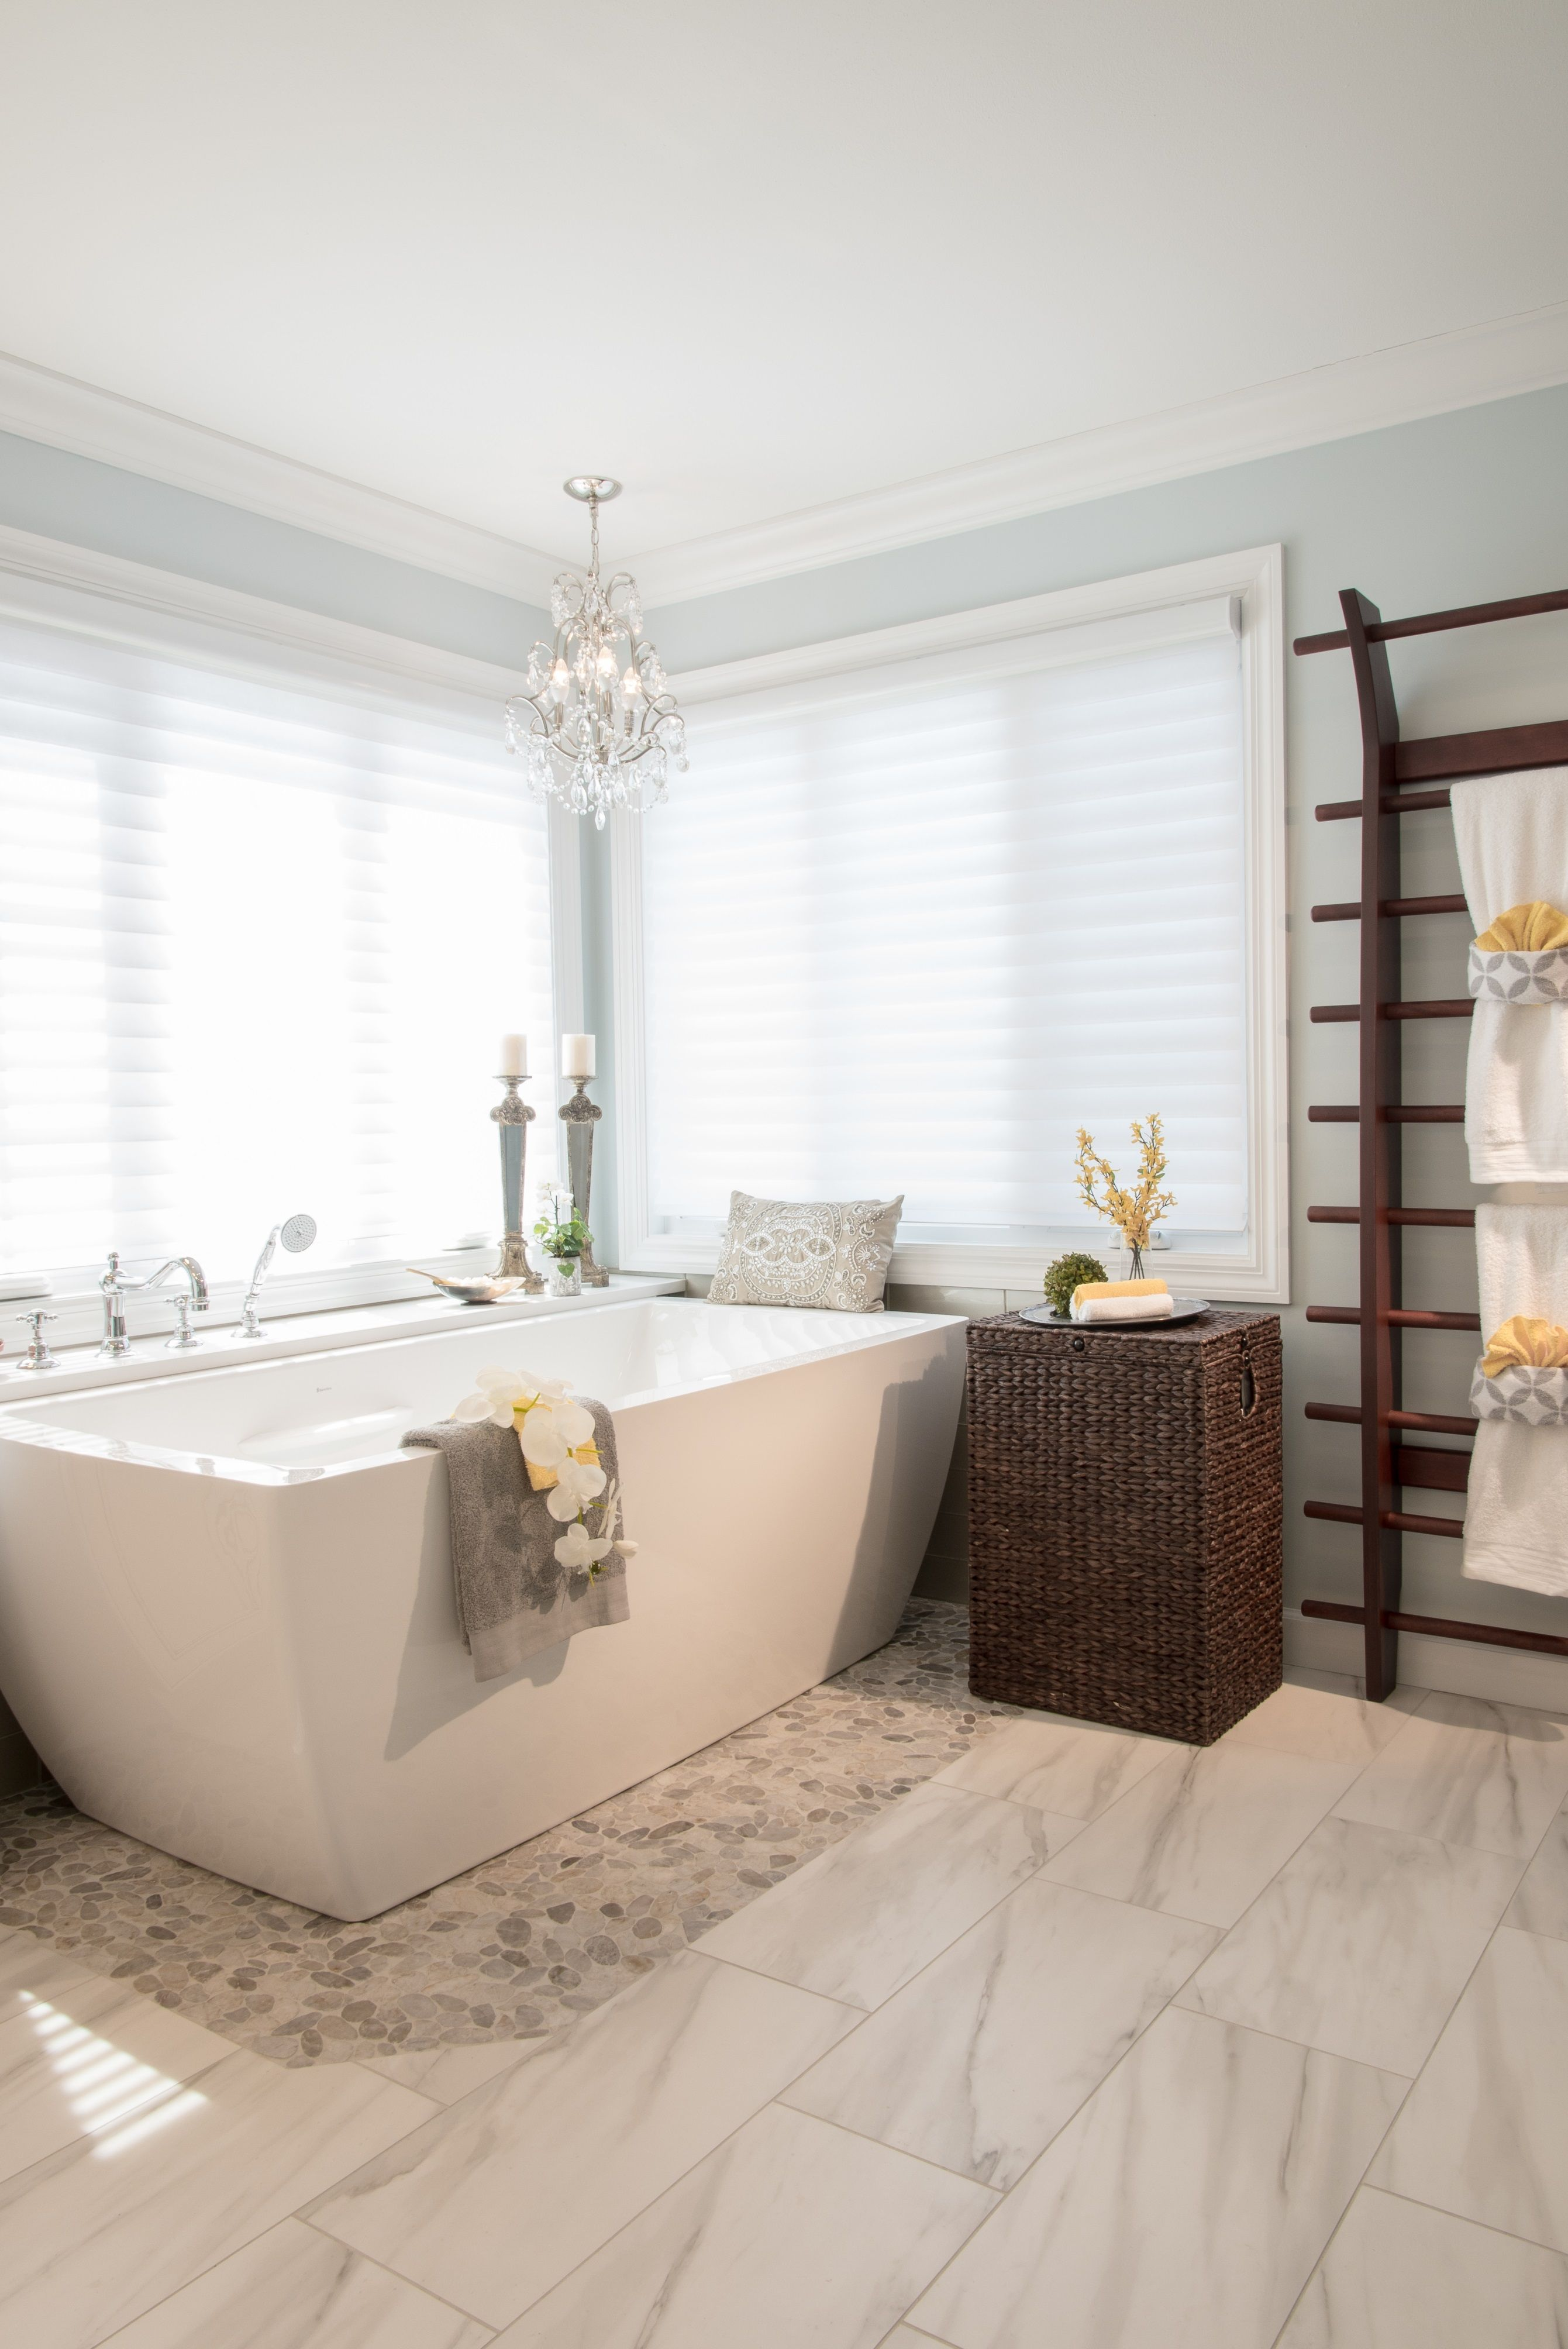 The Subtle Pops Of Yellow Look Great In This Bathroom Remodel Design Visit Our Website To See More Dunajcik Master Bath From Designer Lindsey